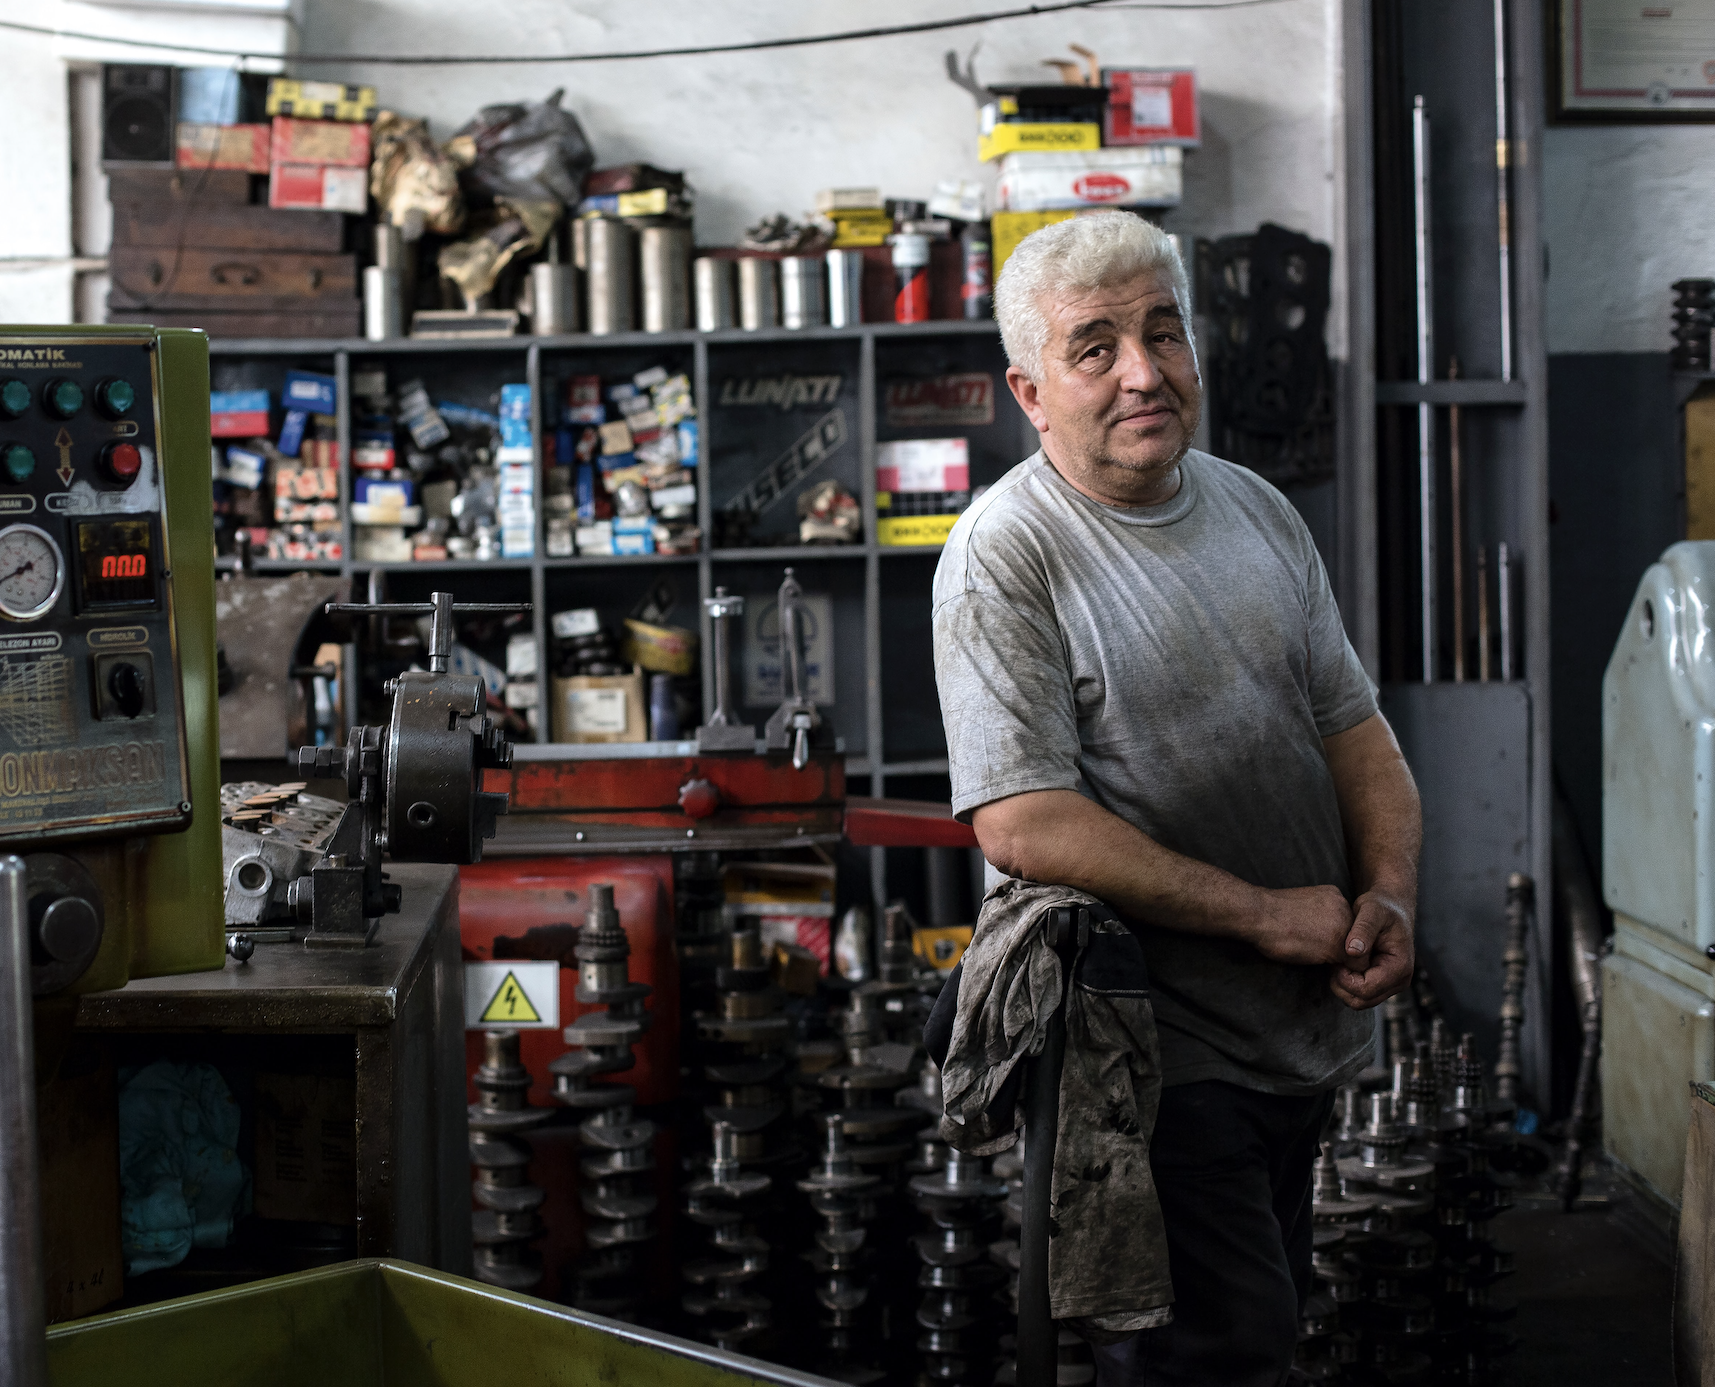 A mechanic poses for the camera in his garage